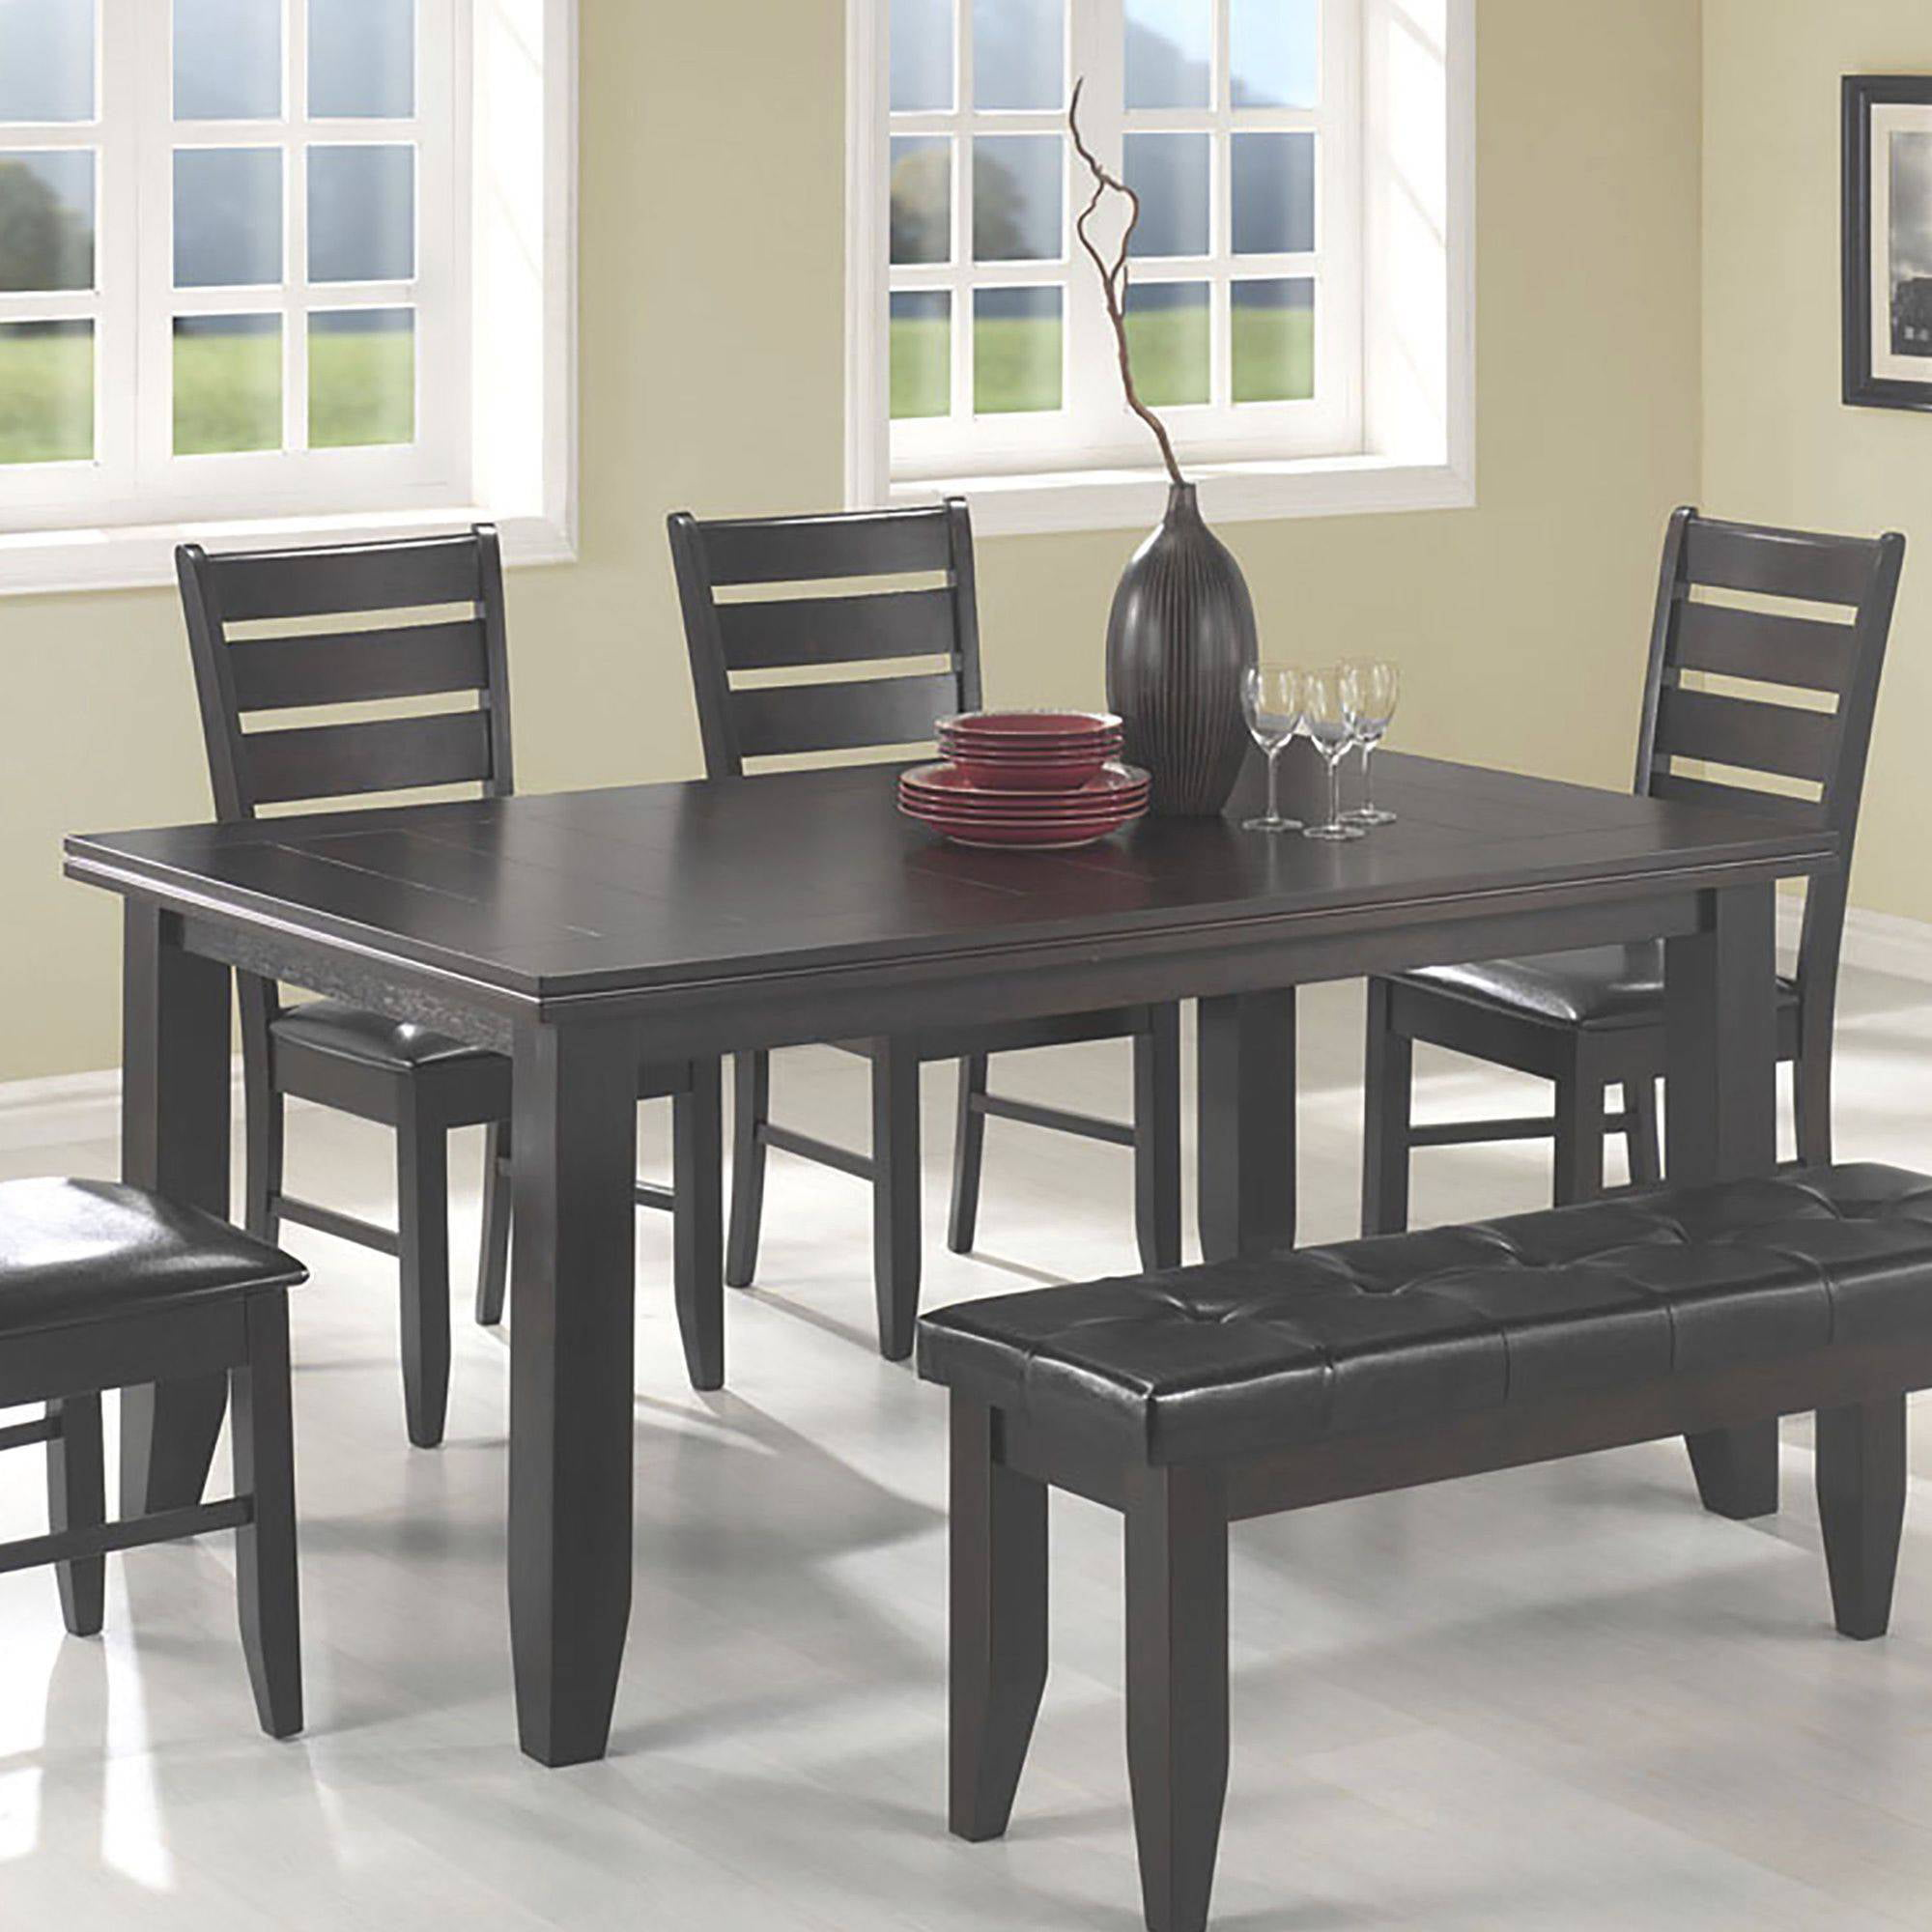 Delicieux Coaster Company Dalila Dining Table, Cappuccino (Chairs Sold Separately)    Walmart.com